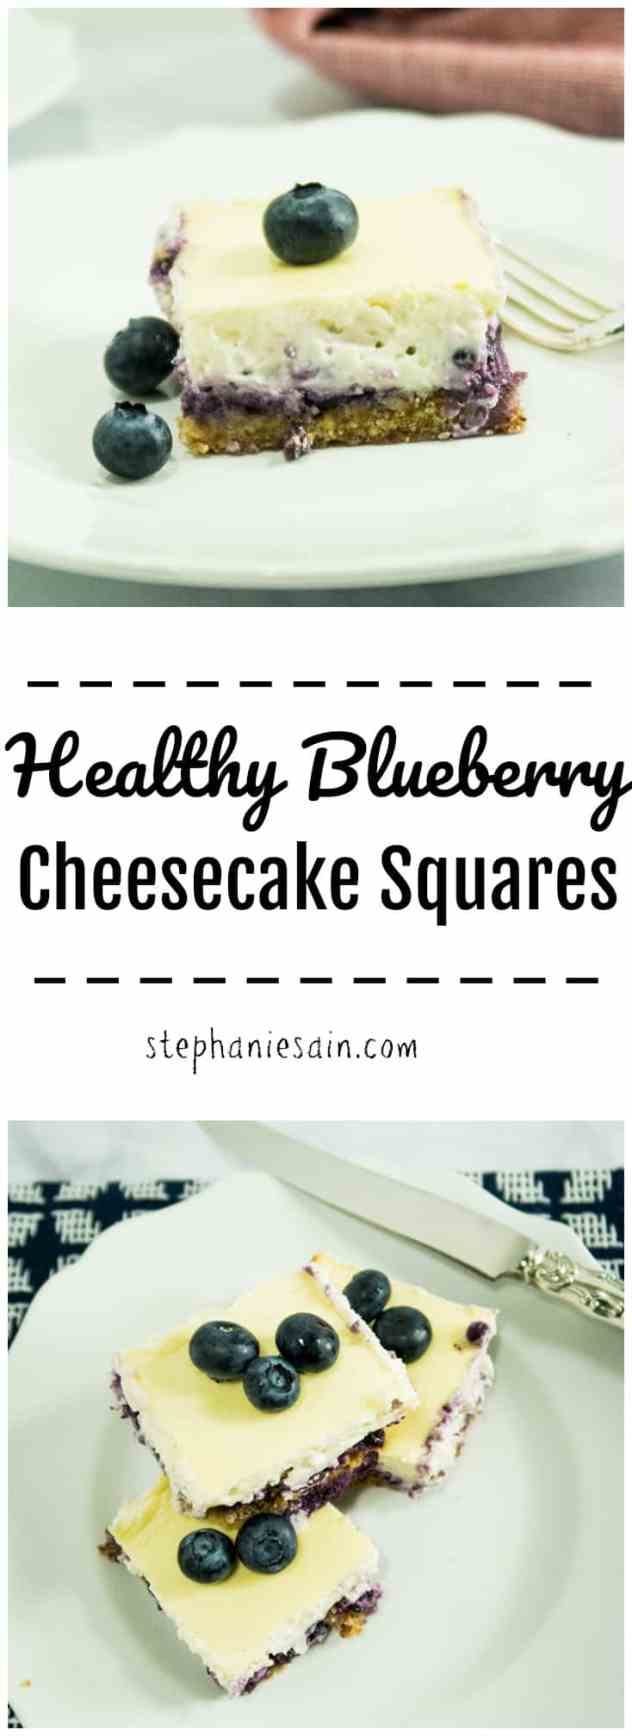 Healthy Blueberry Cheesecake Squares are the perfect little tasty bite sized treat. Lightened up and naturally sweetened for a treat you can feel good about eating. Gluten Free & Vegetarian.